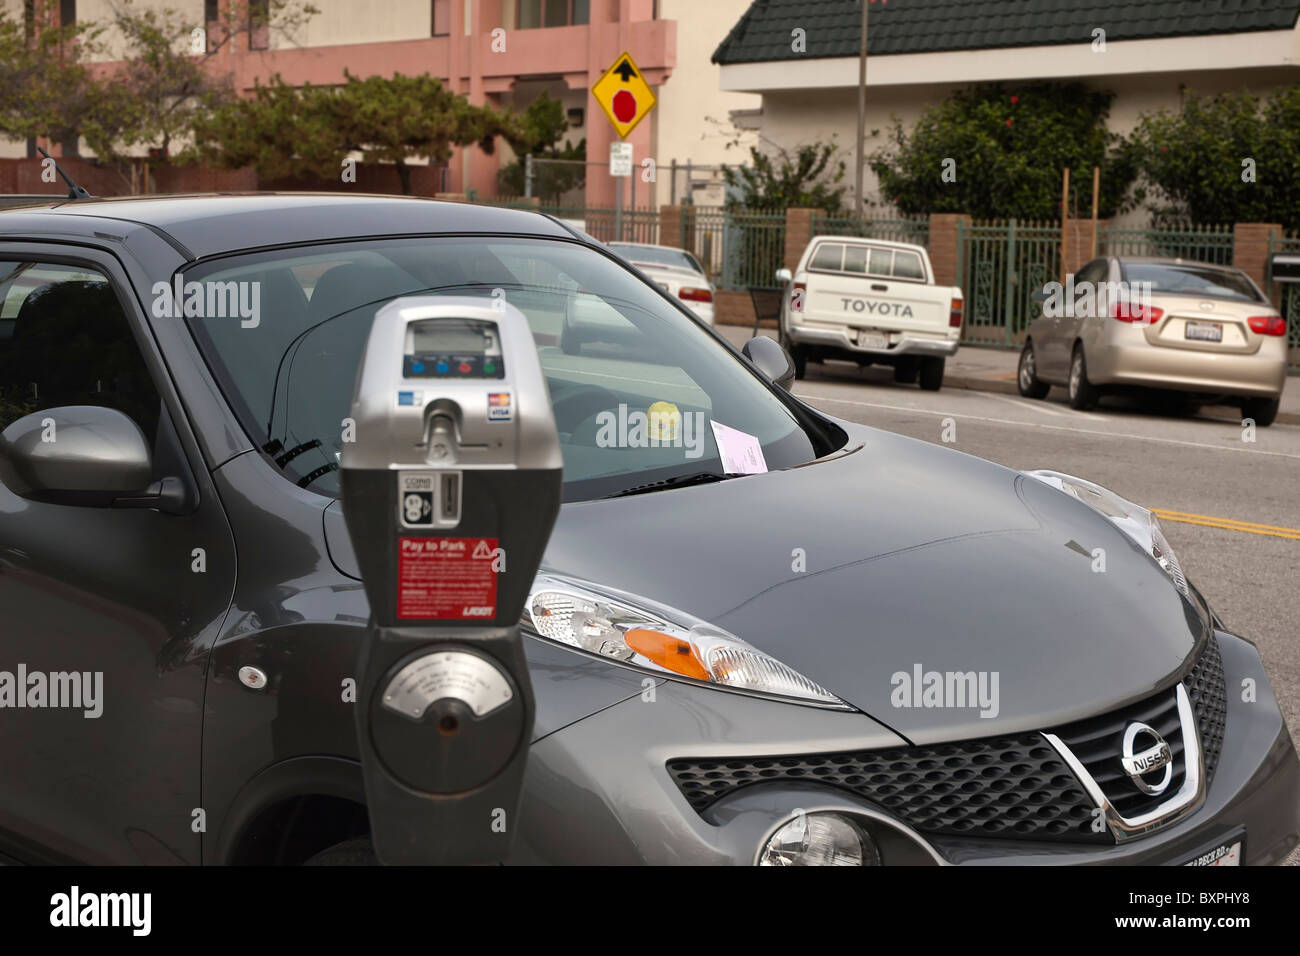 A car with a parking ticket issued due to an expired meter. - Stock Image